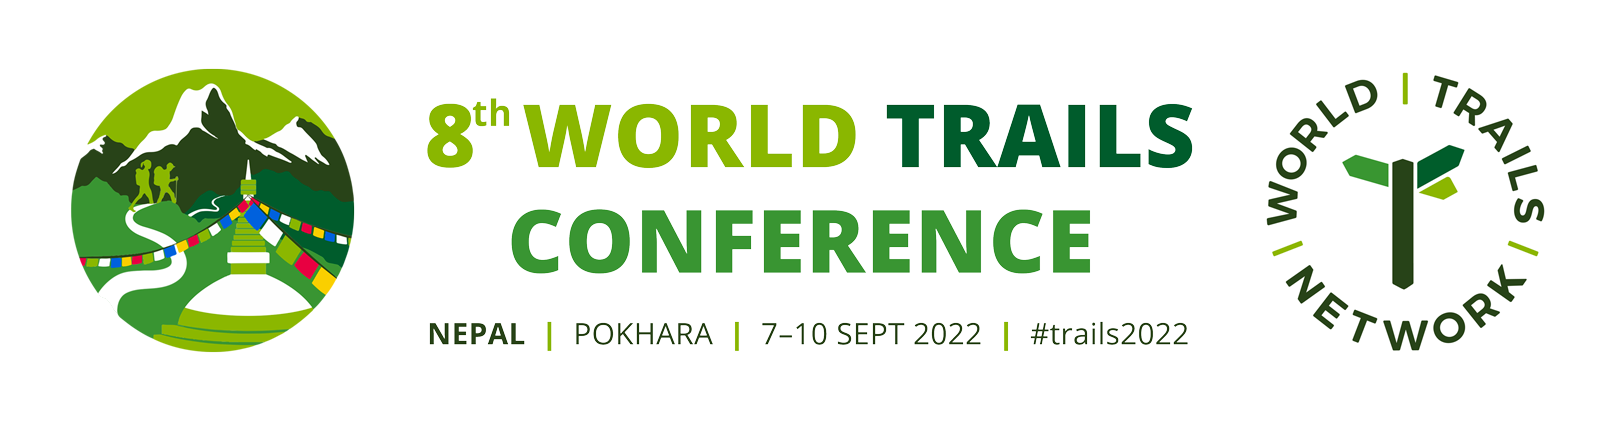 World Trails Conference 2022